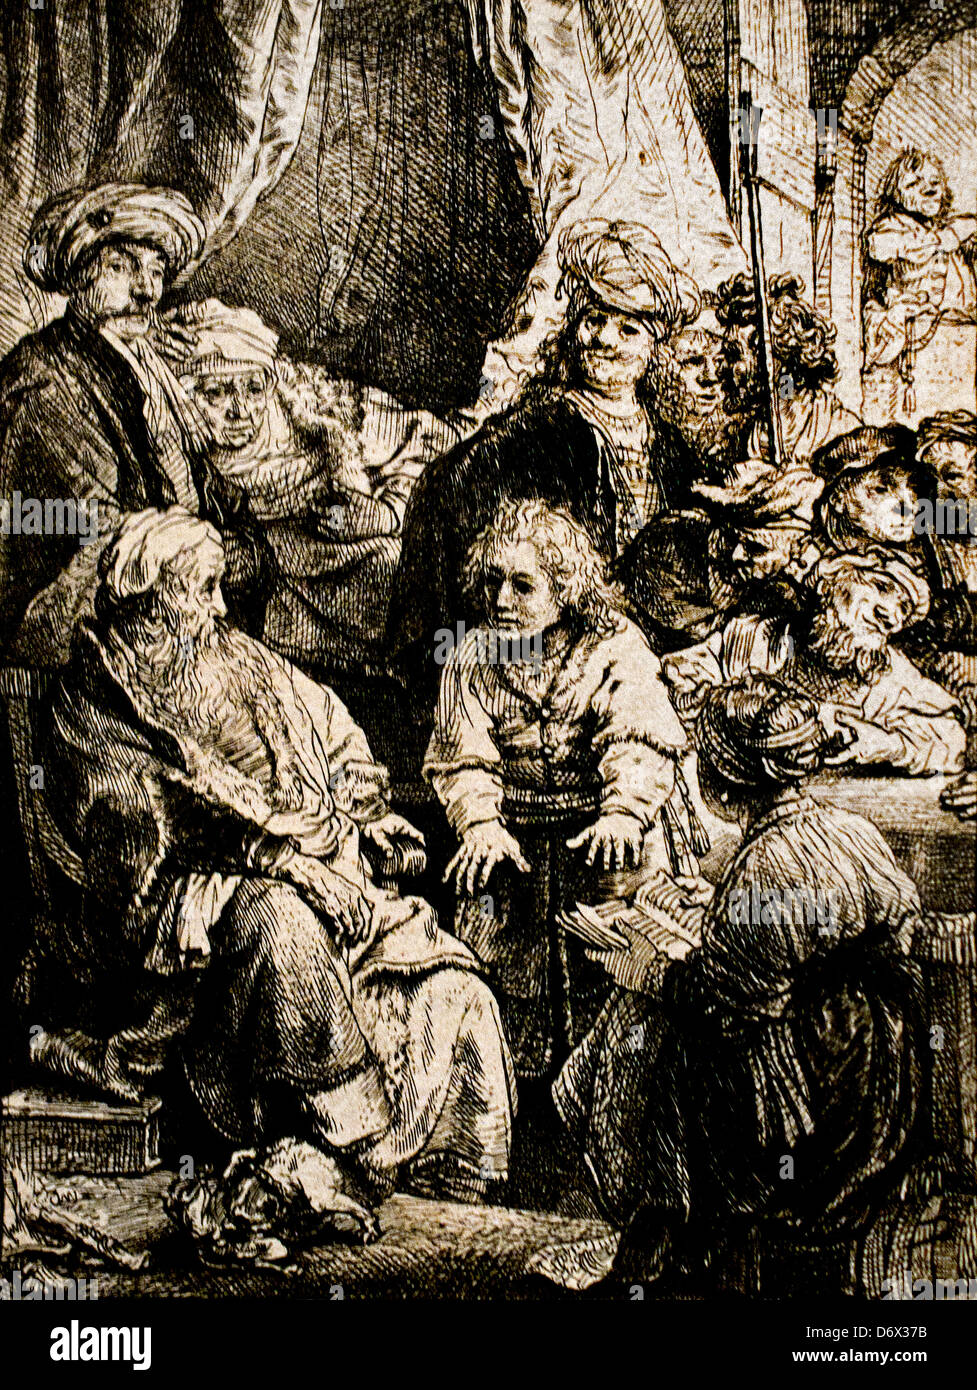 Joseph Telling his dreams 1638 Rembrandt Harmenszoon van Rijn Dutch 1606–1669 Netherlands etching drypoint - Stock Image